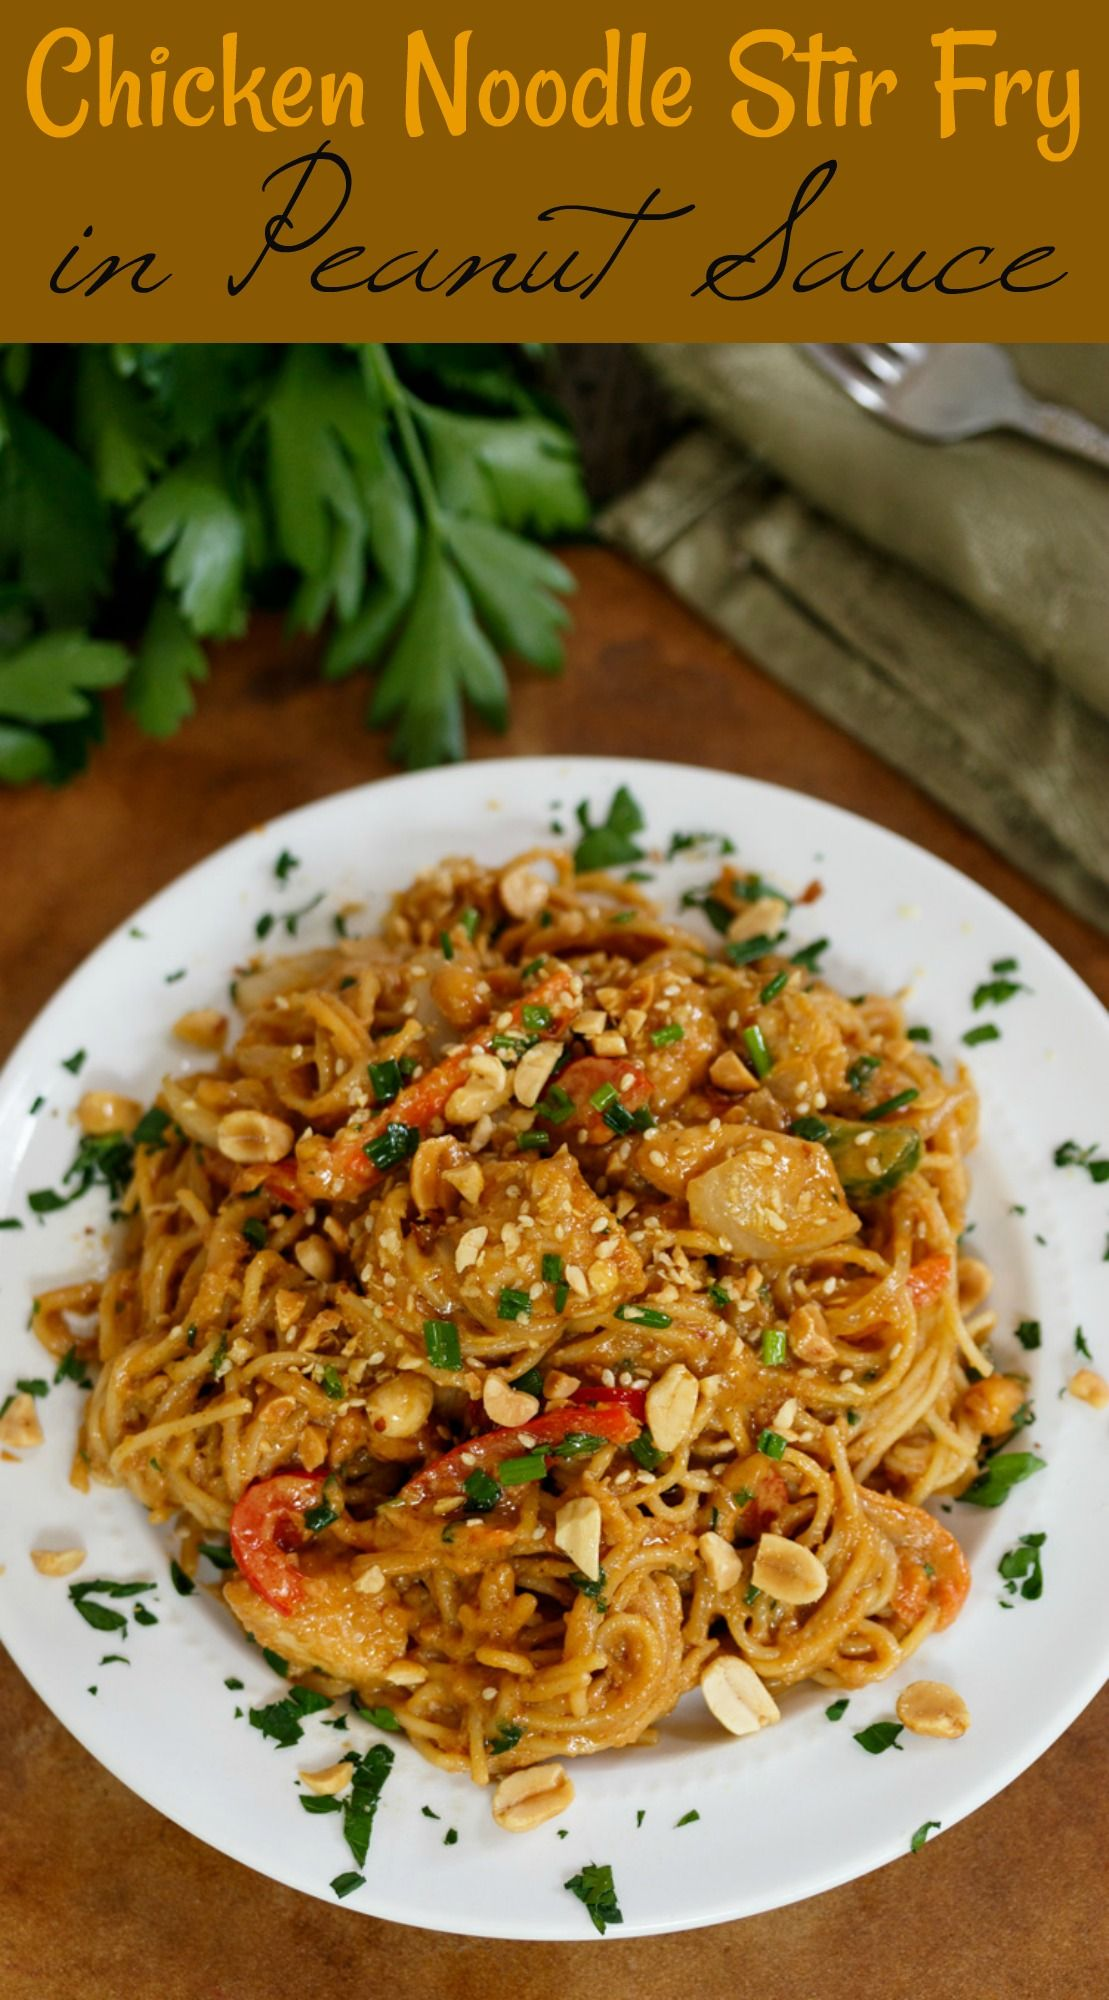 Spaghetti Noodles Chicken And Your Favorite Vegetables Tossed In A Savory Homemade P Chicken Stir Fry With Noodles Homemade Peanut Sauce Peanut Sauce Chicken